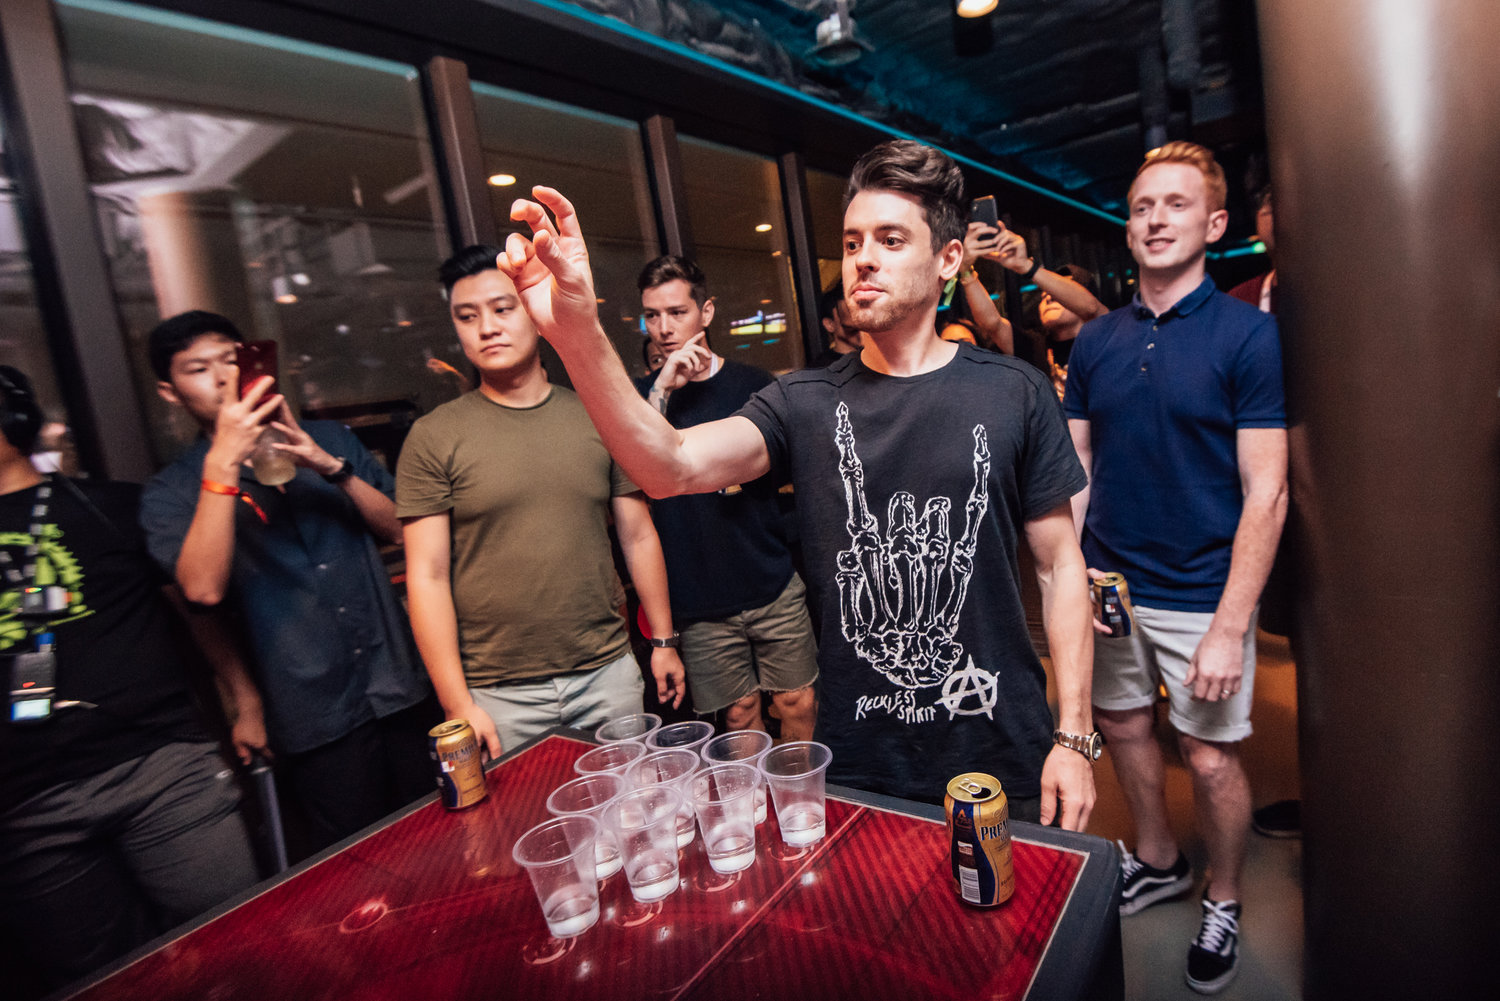 The ship also featured its signature pop-up parties and artist-led side activities where shipmates got competitive over Glow Bowling with Showtek, Beer Pong with Cash Cash, and struck a yoga pose with Helena Legend